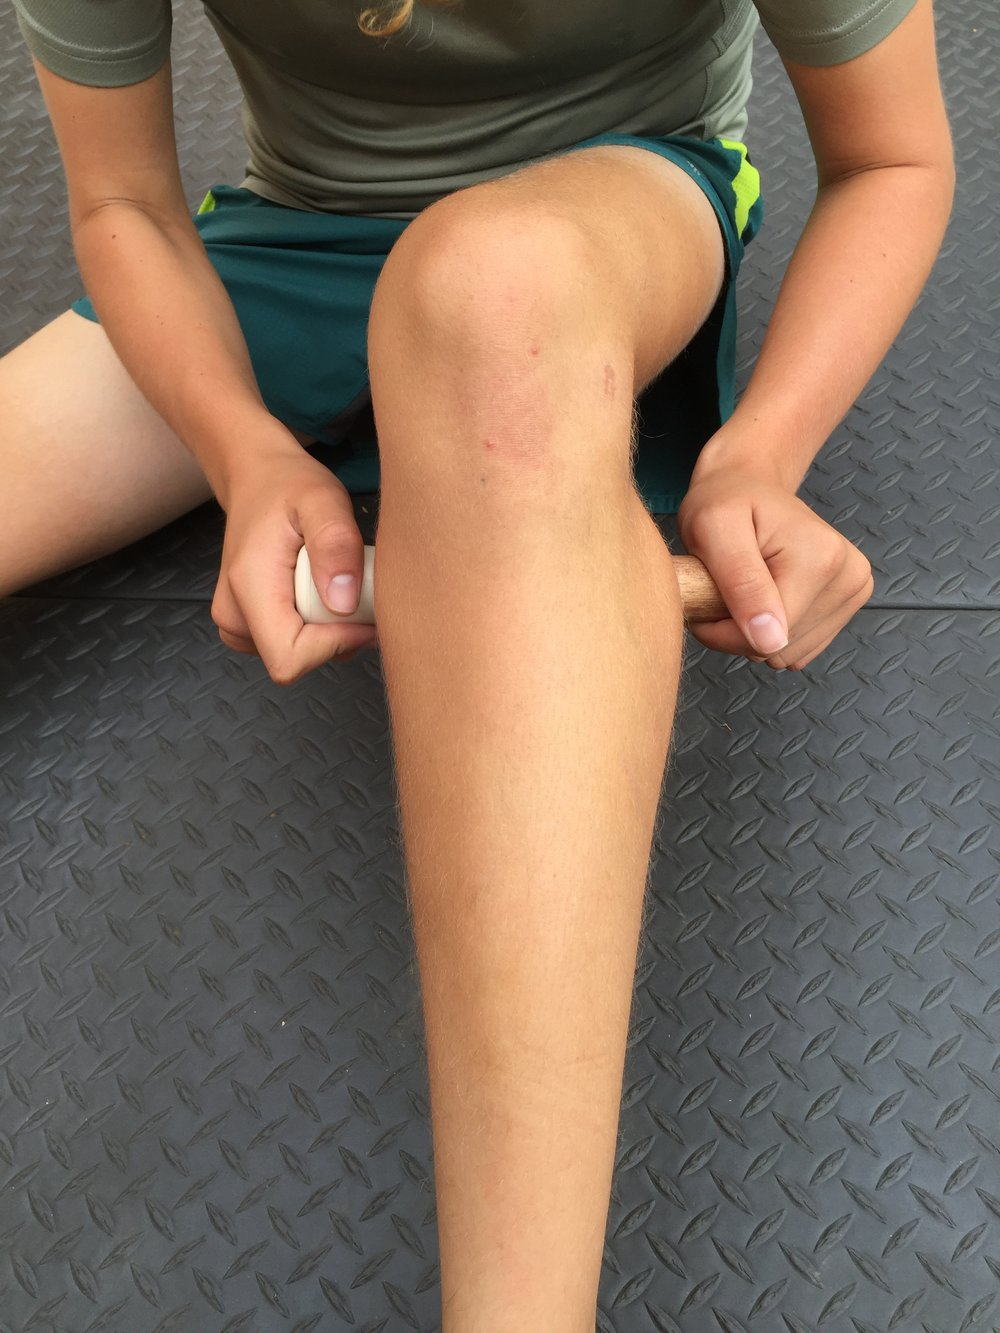 Calf: - As runners the calves can become extremely tight. Running from behind your knee to your foot the calve muscles need to be massage cautiously. And never massage directly on your Achilles tendon, an extremely sensitive area.